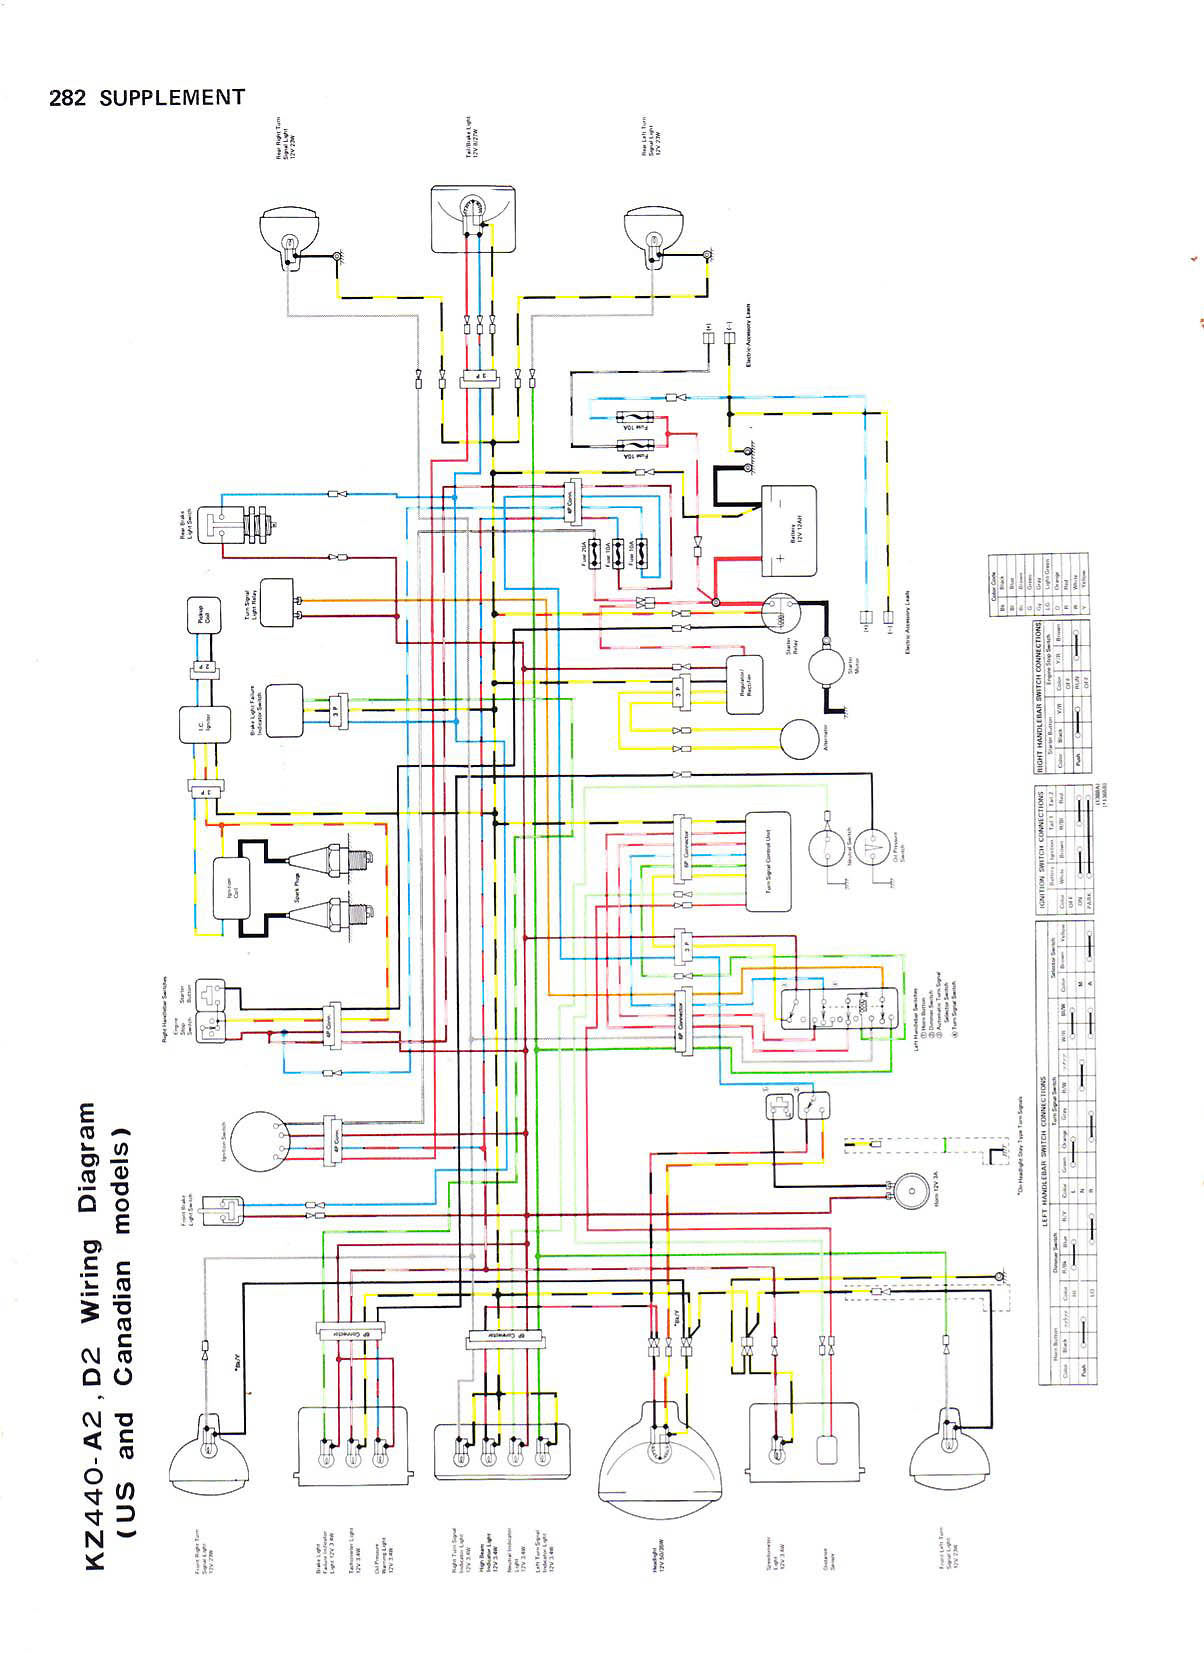 Kawasaki KZ 440 %2780 a %2782 Service Manual_Page_279 index of kz440 wiring diagrams 81 kz440 wiring diagram at bakdesigns.co